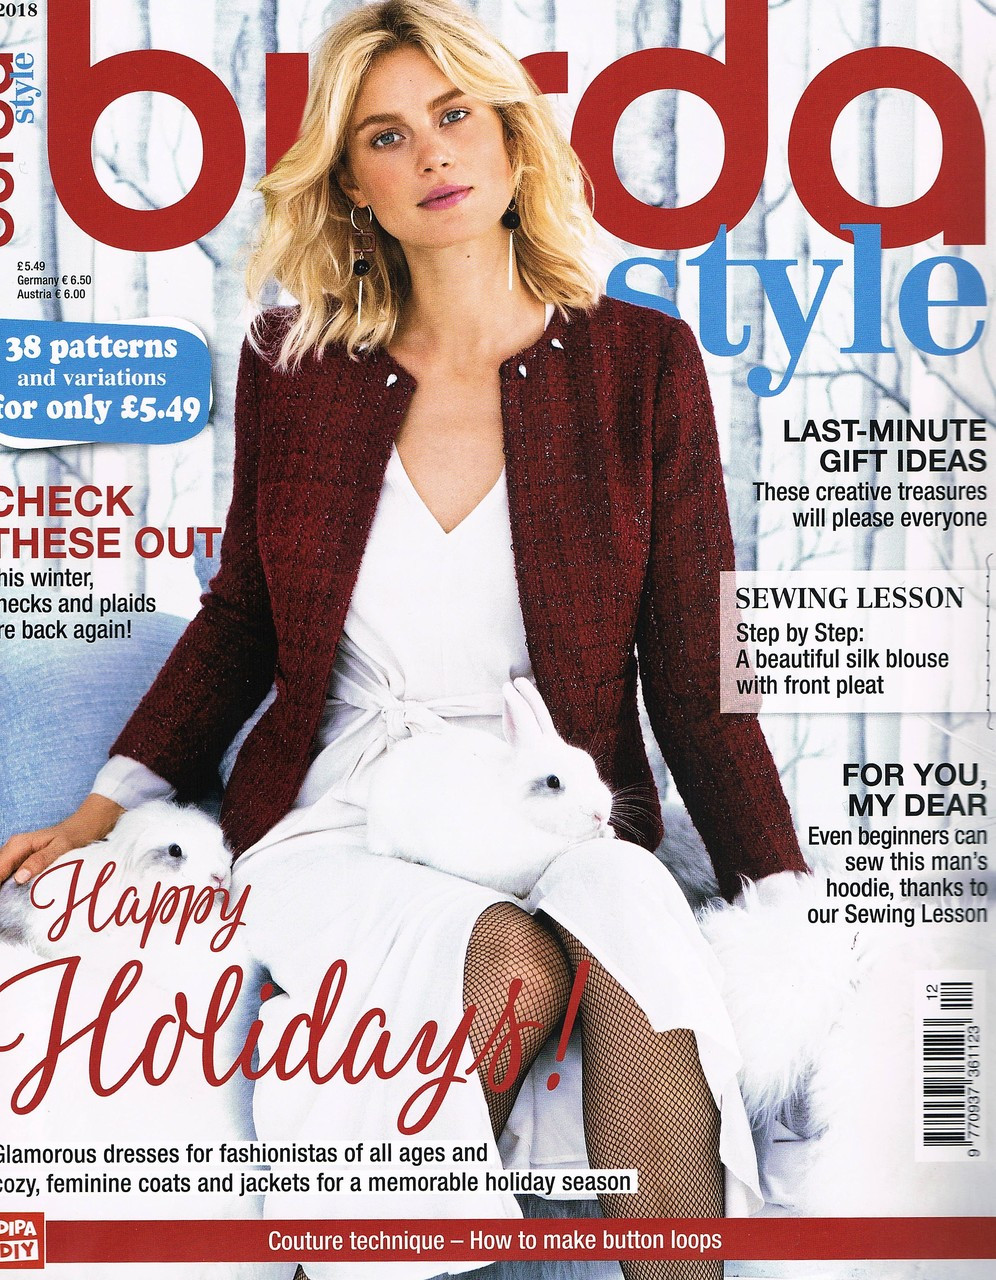 Home · Burda Style Magazine  Burda Style 12 2018. Image 1. Image 1. Image  2. Image 3. See 2 more pictures 9a8f2098efcf